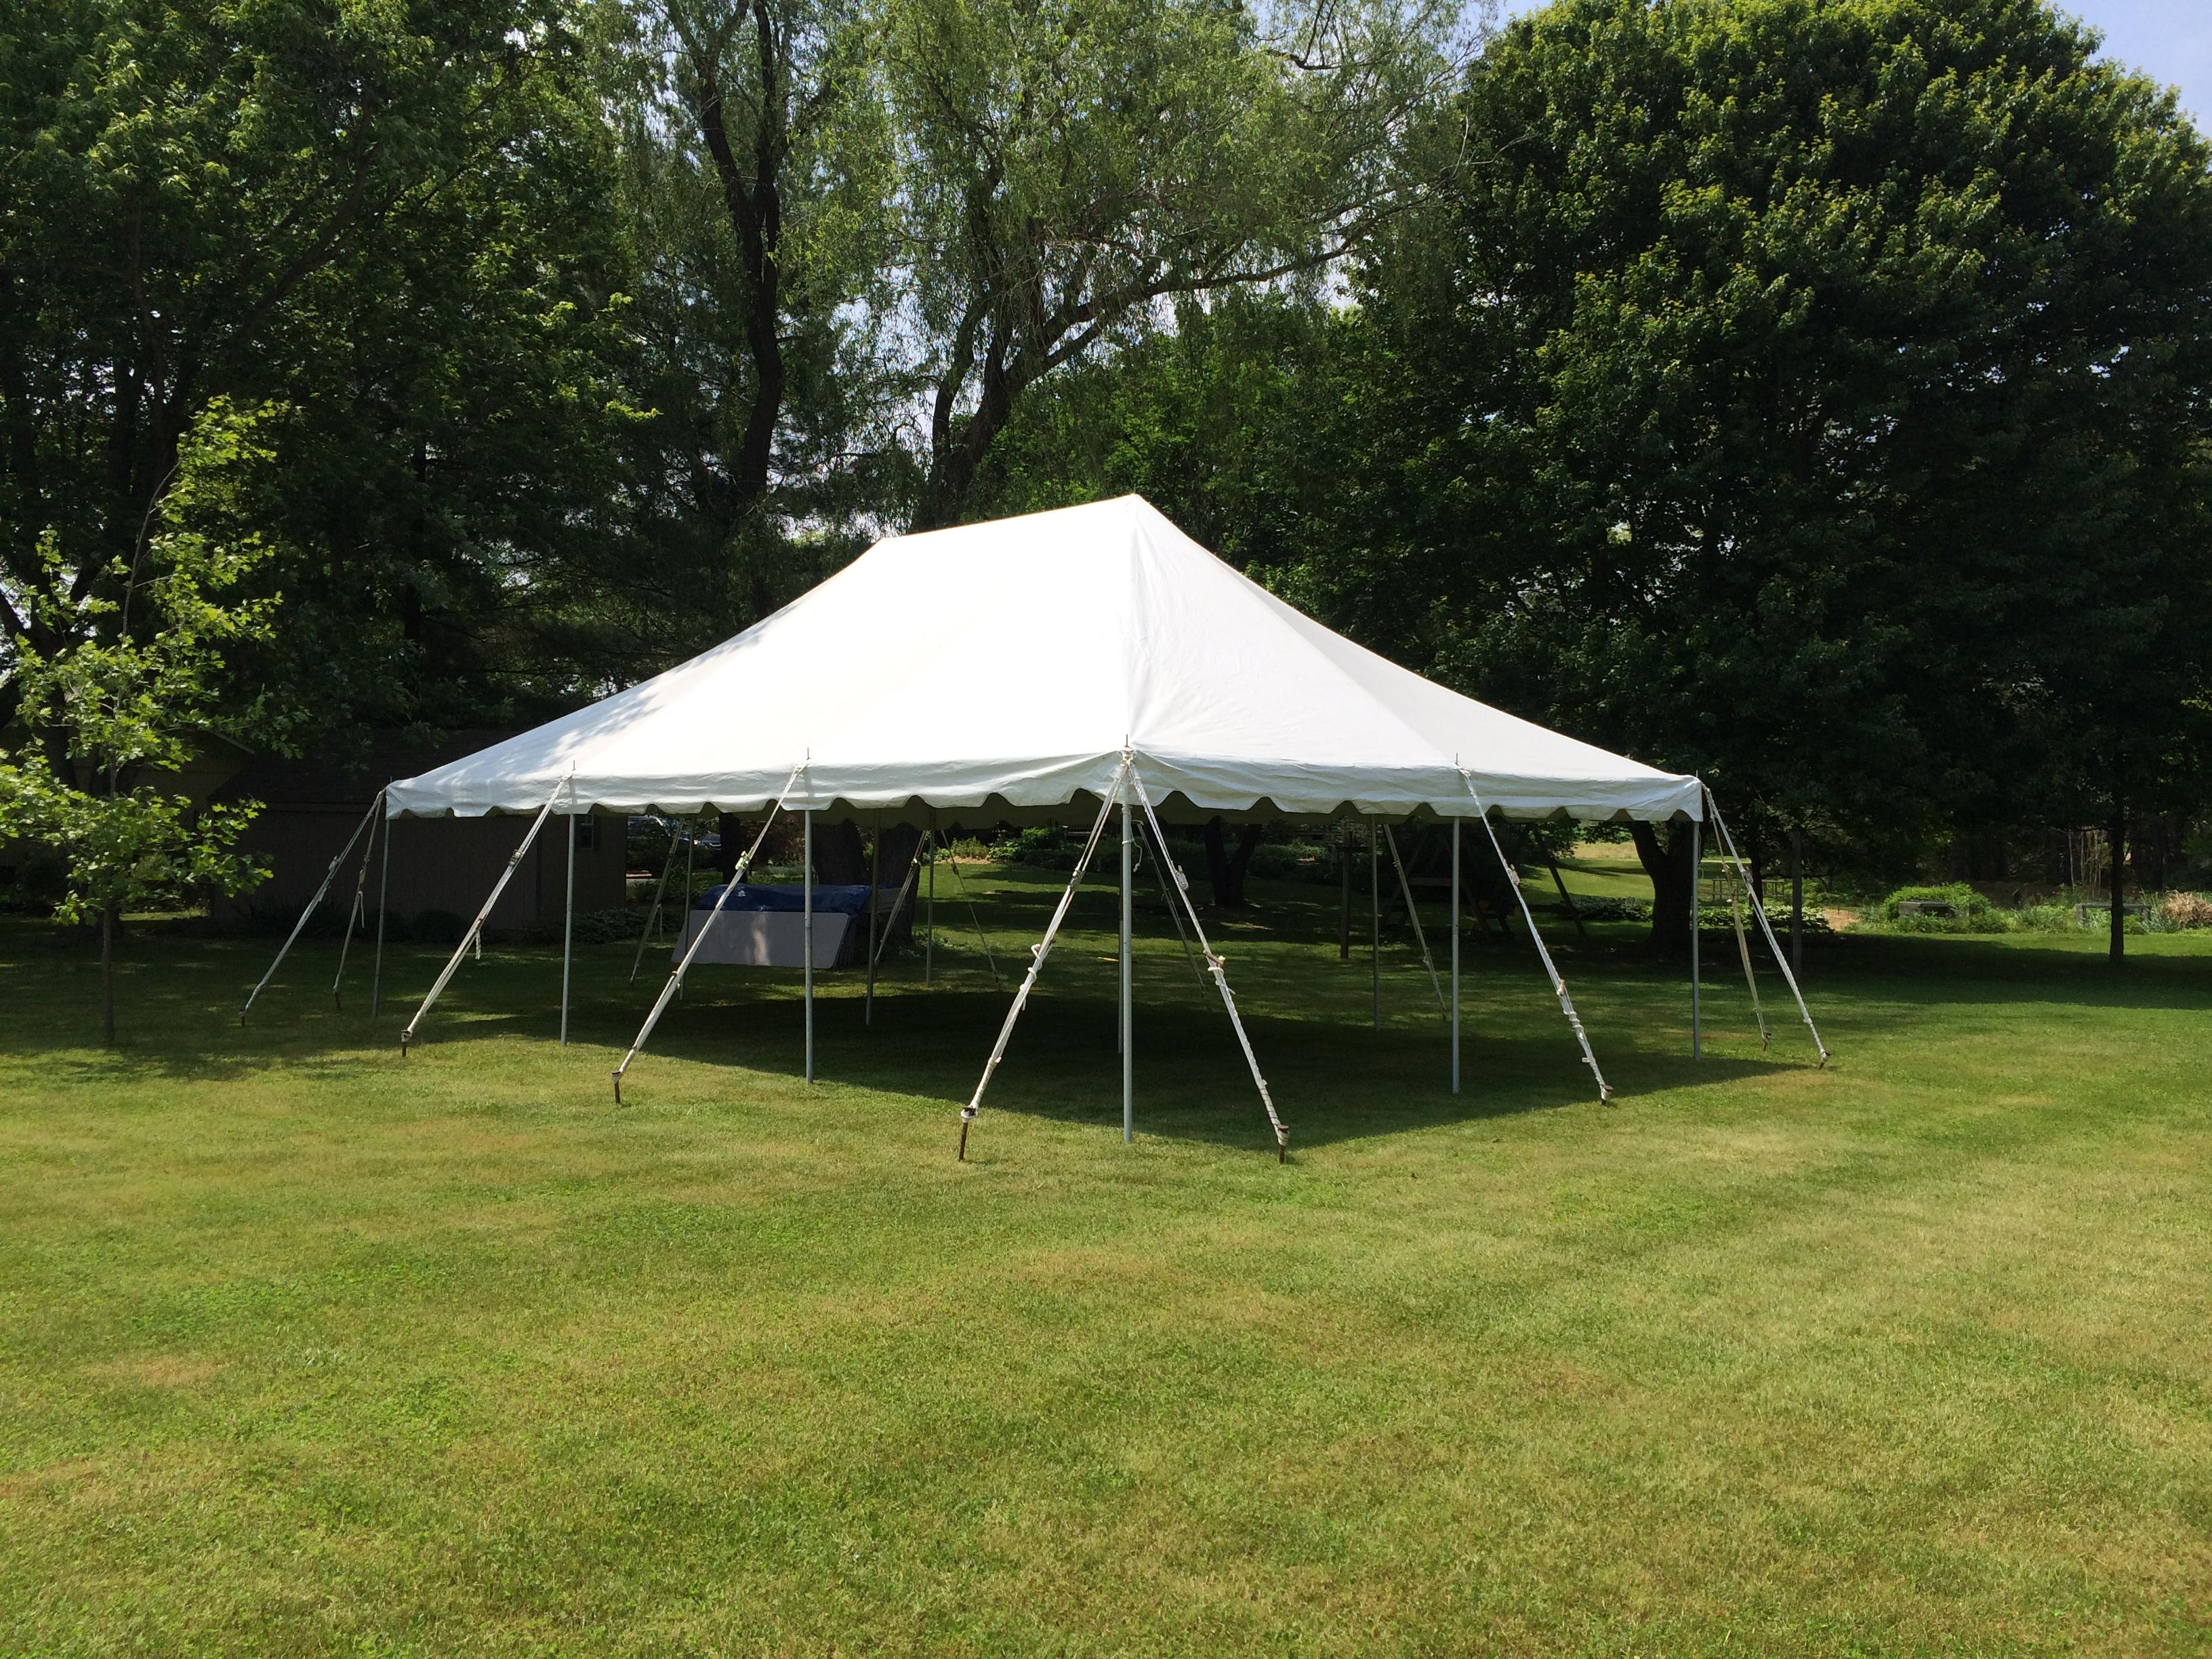 Tent And Chair Rental Karcher Event Rental Llc Tents Tables Chairs And